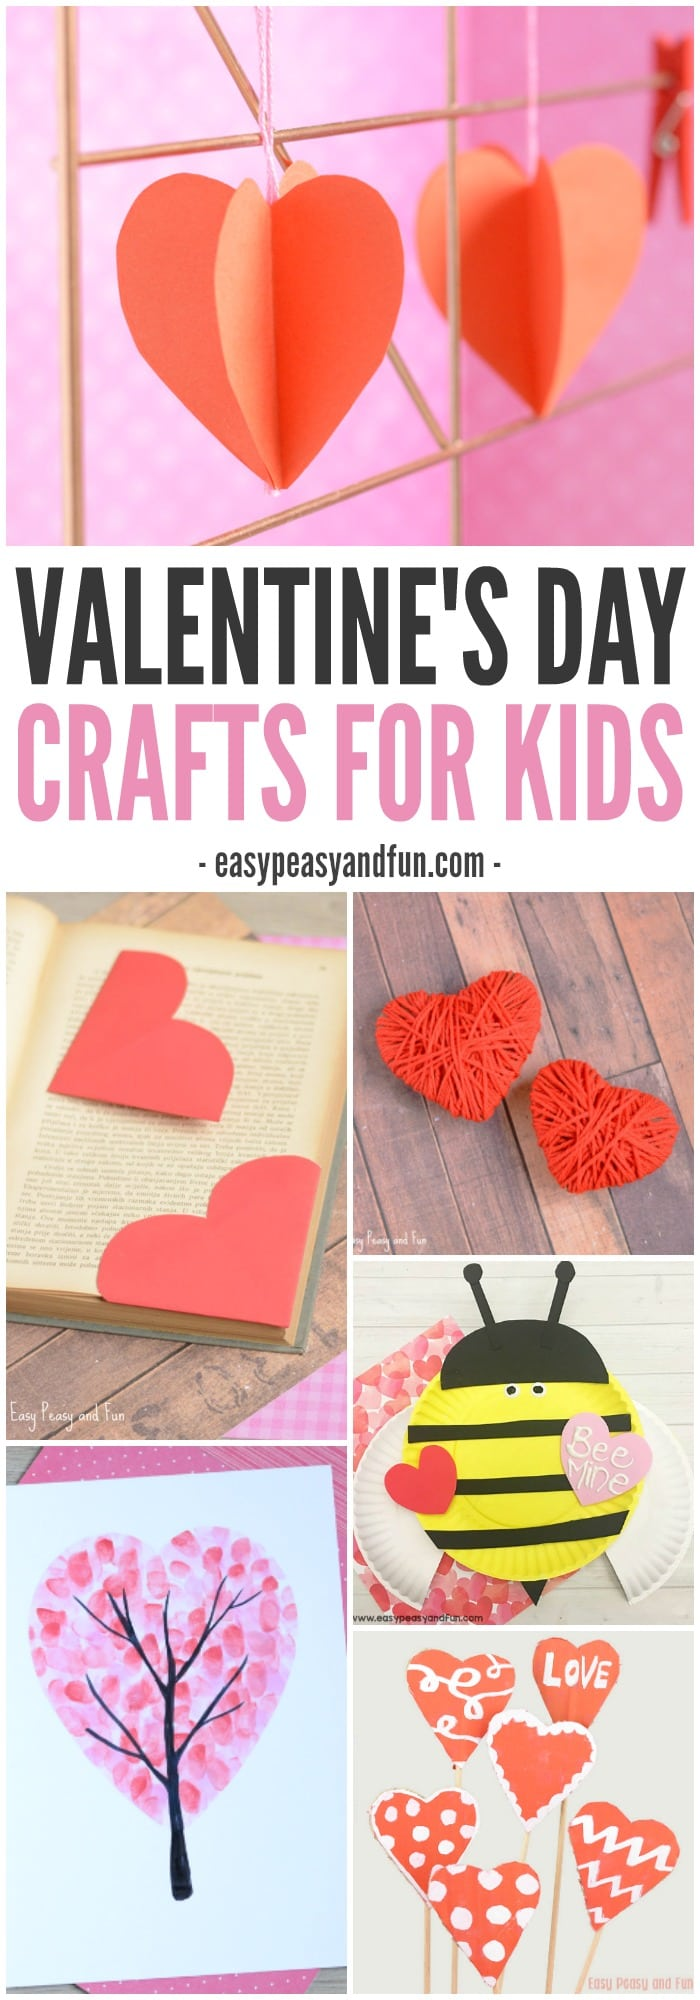 Simple Valentines Day Crafts for Kids